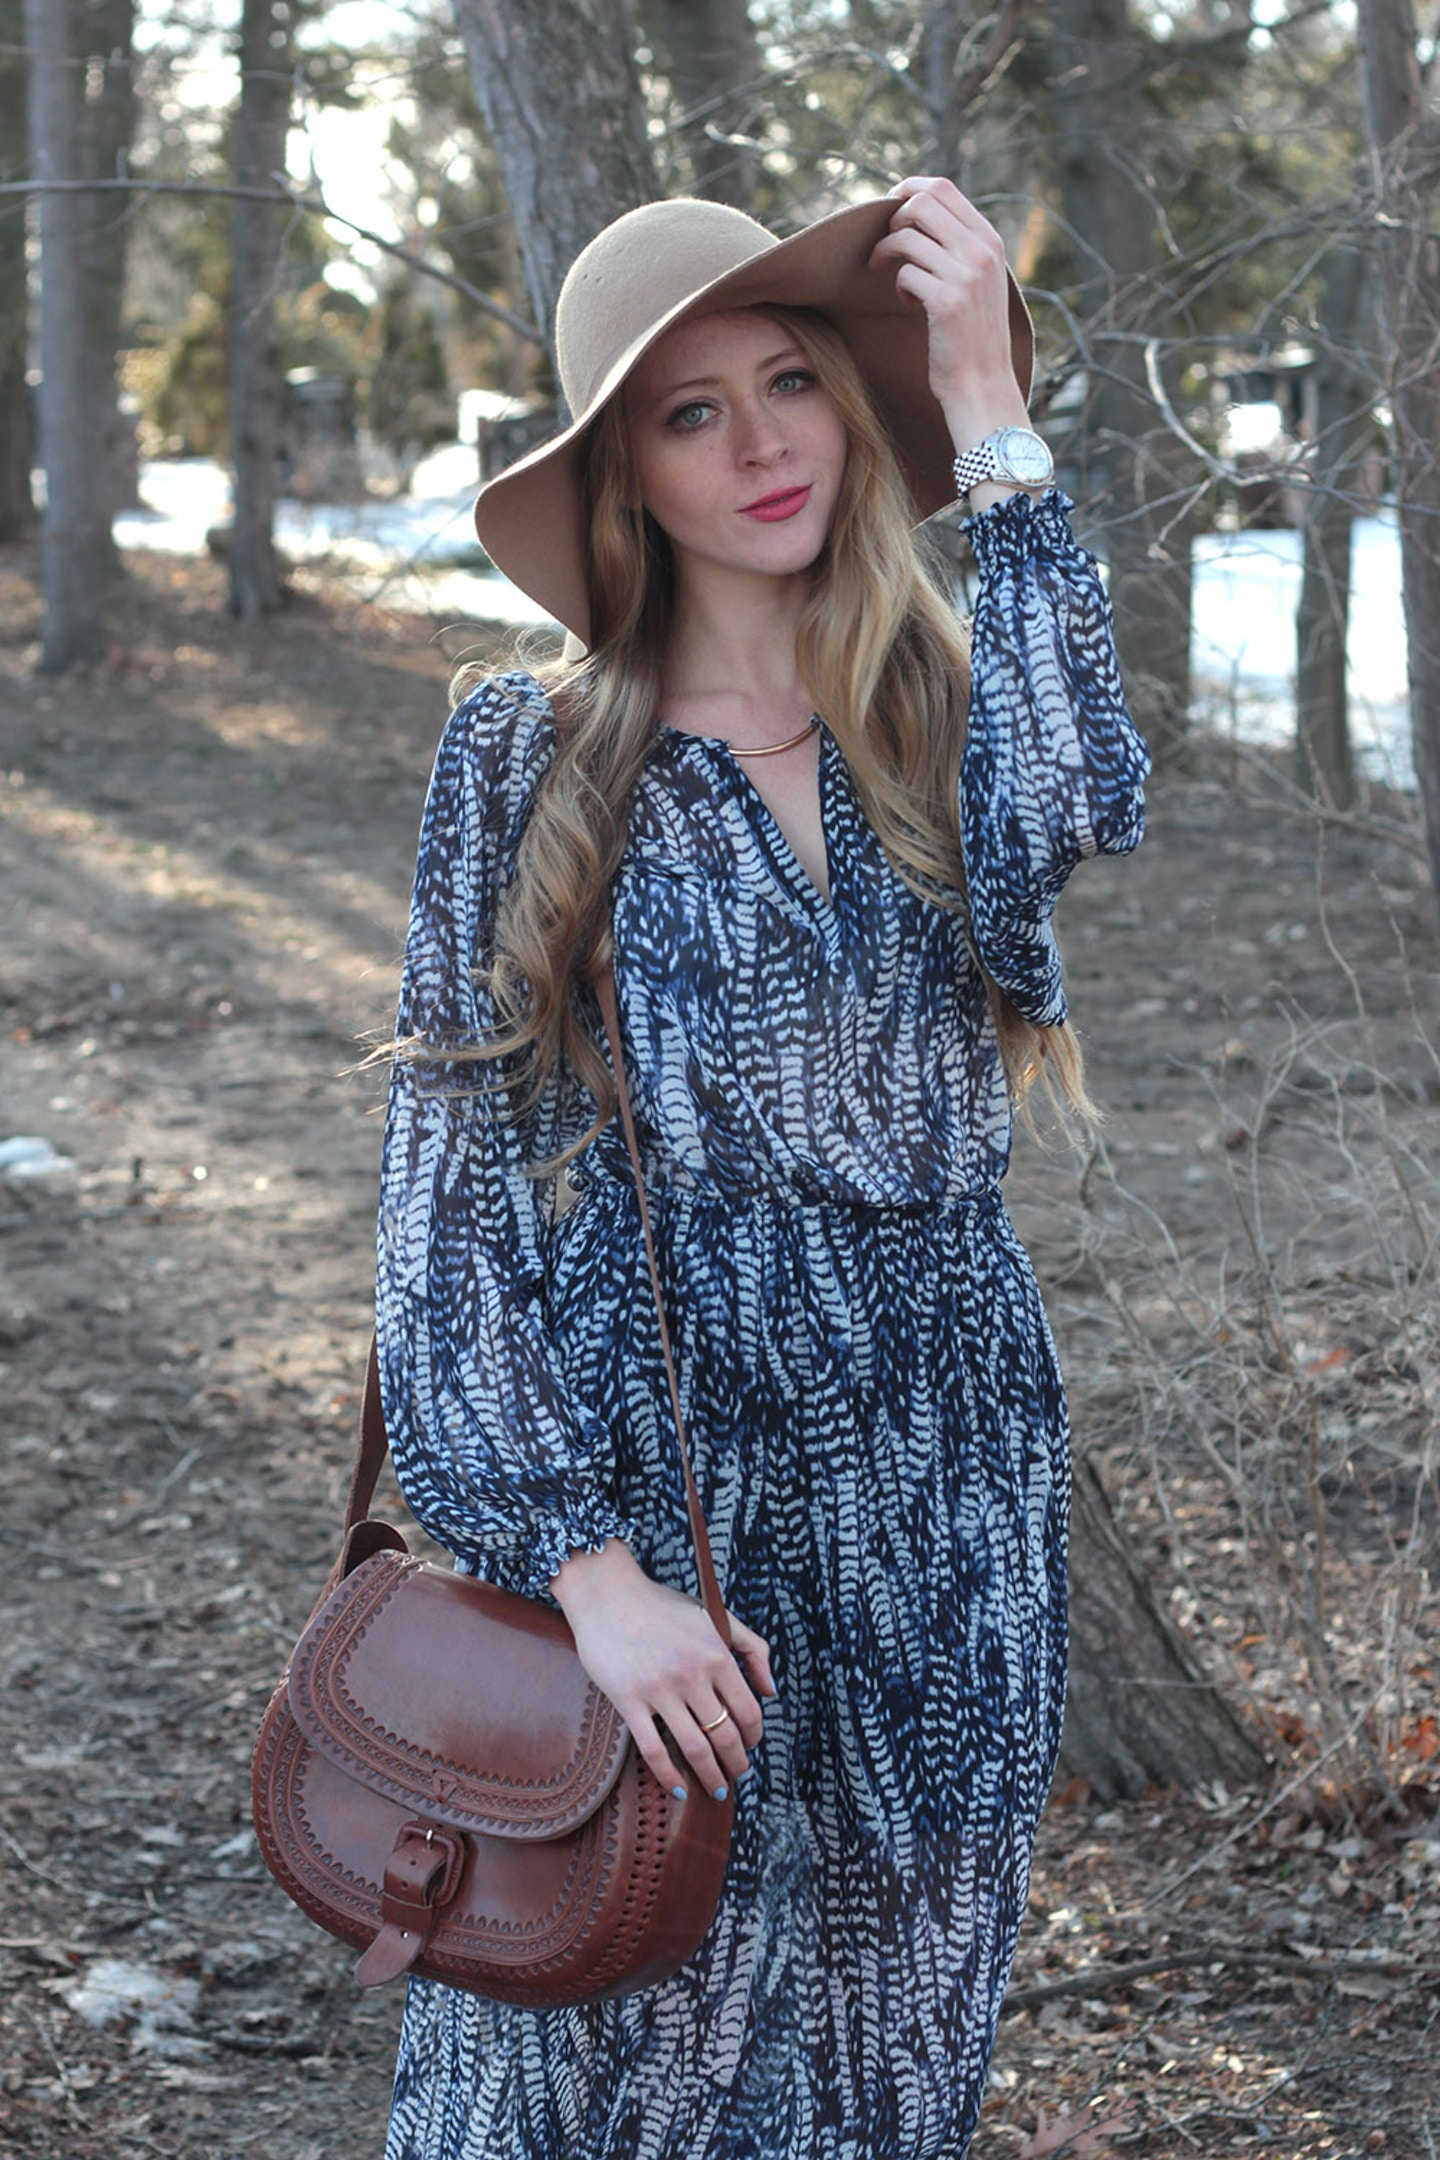 Songbird – Maxi dress and floppy hat